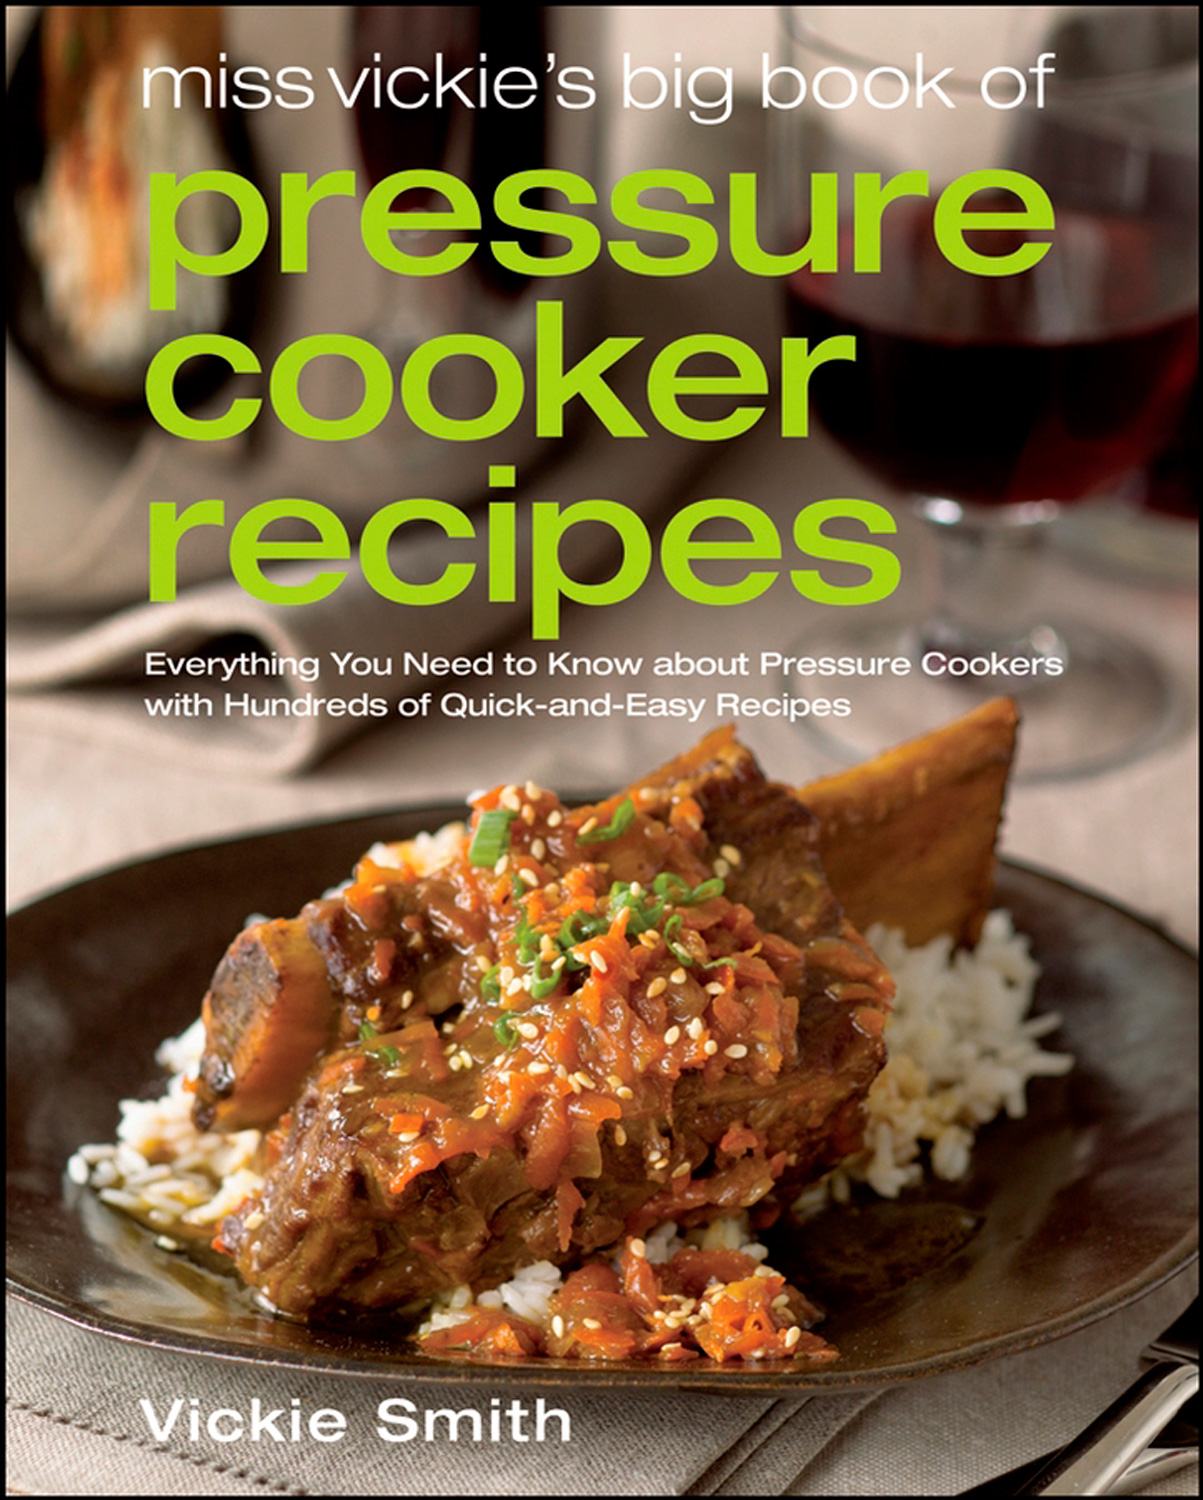 Miss Vickie's Big Book of Pressure Cooker Recipes-9780764597268